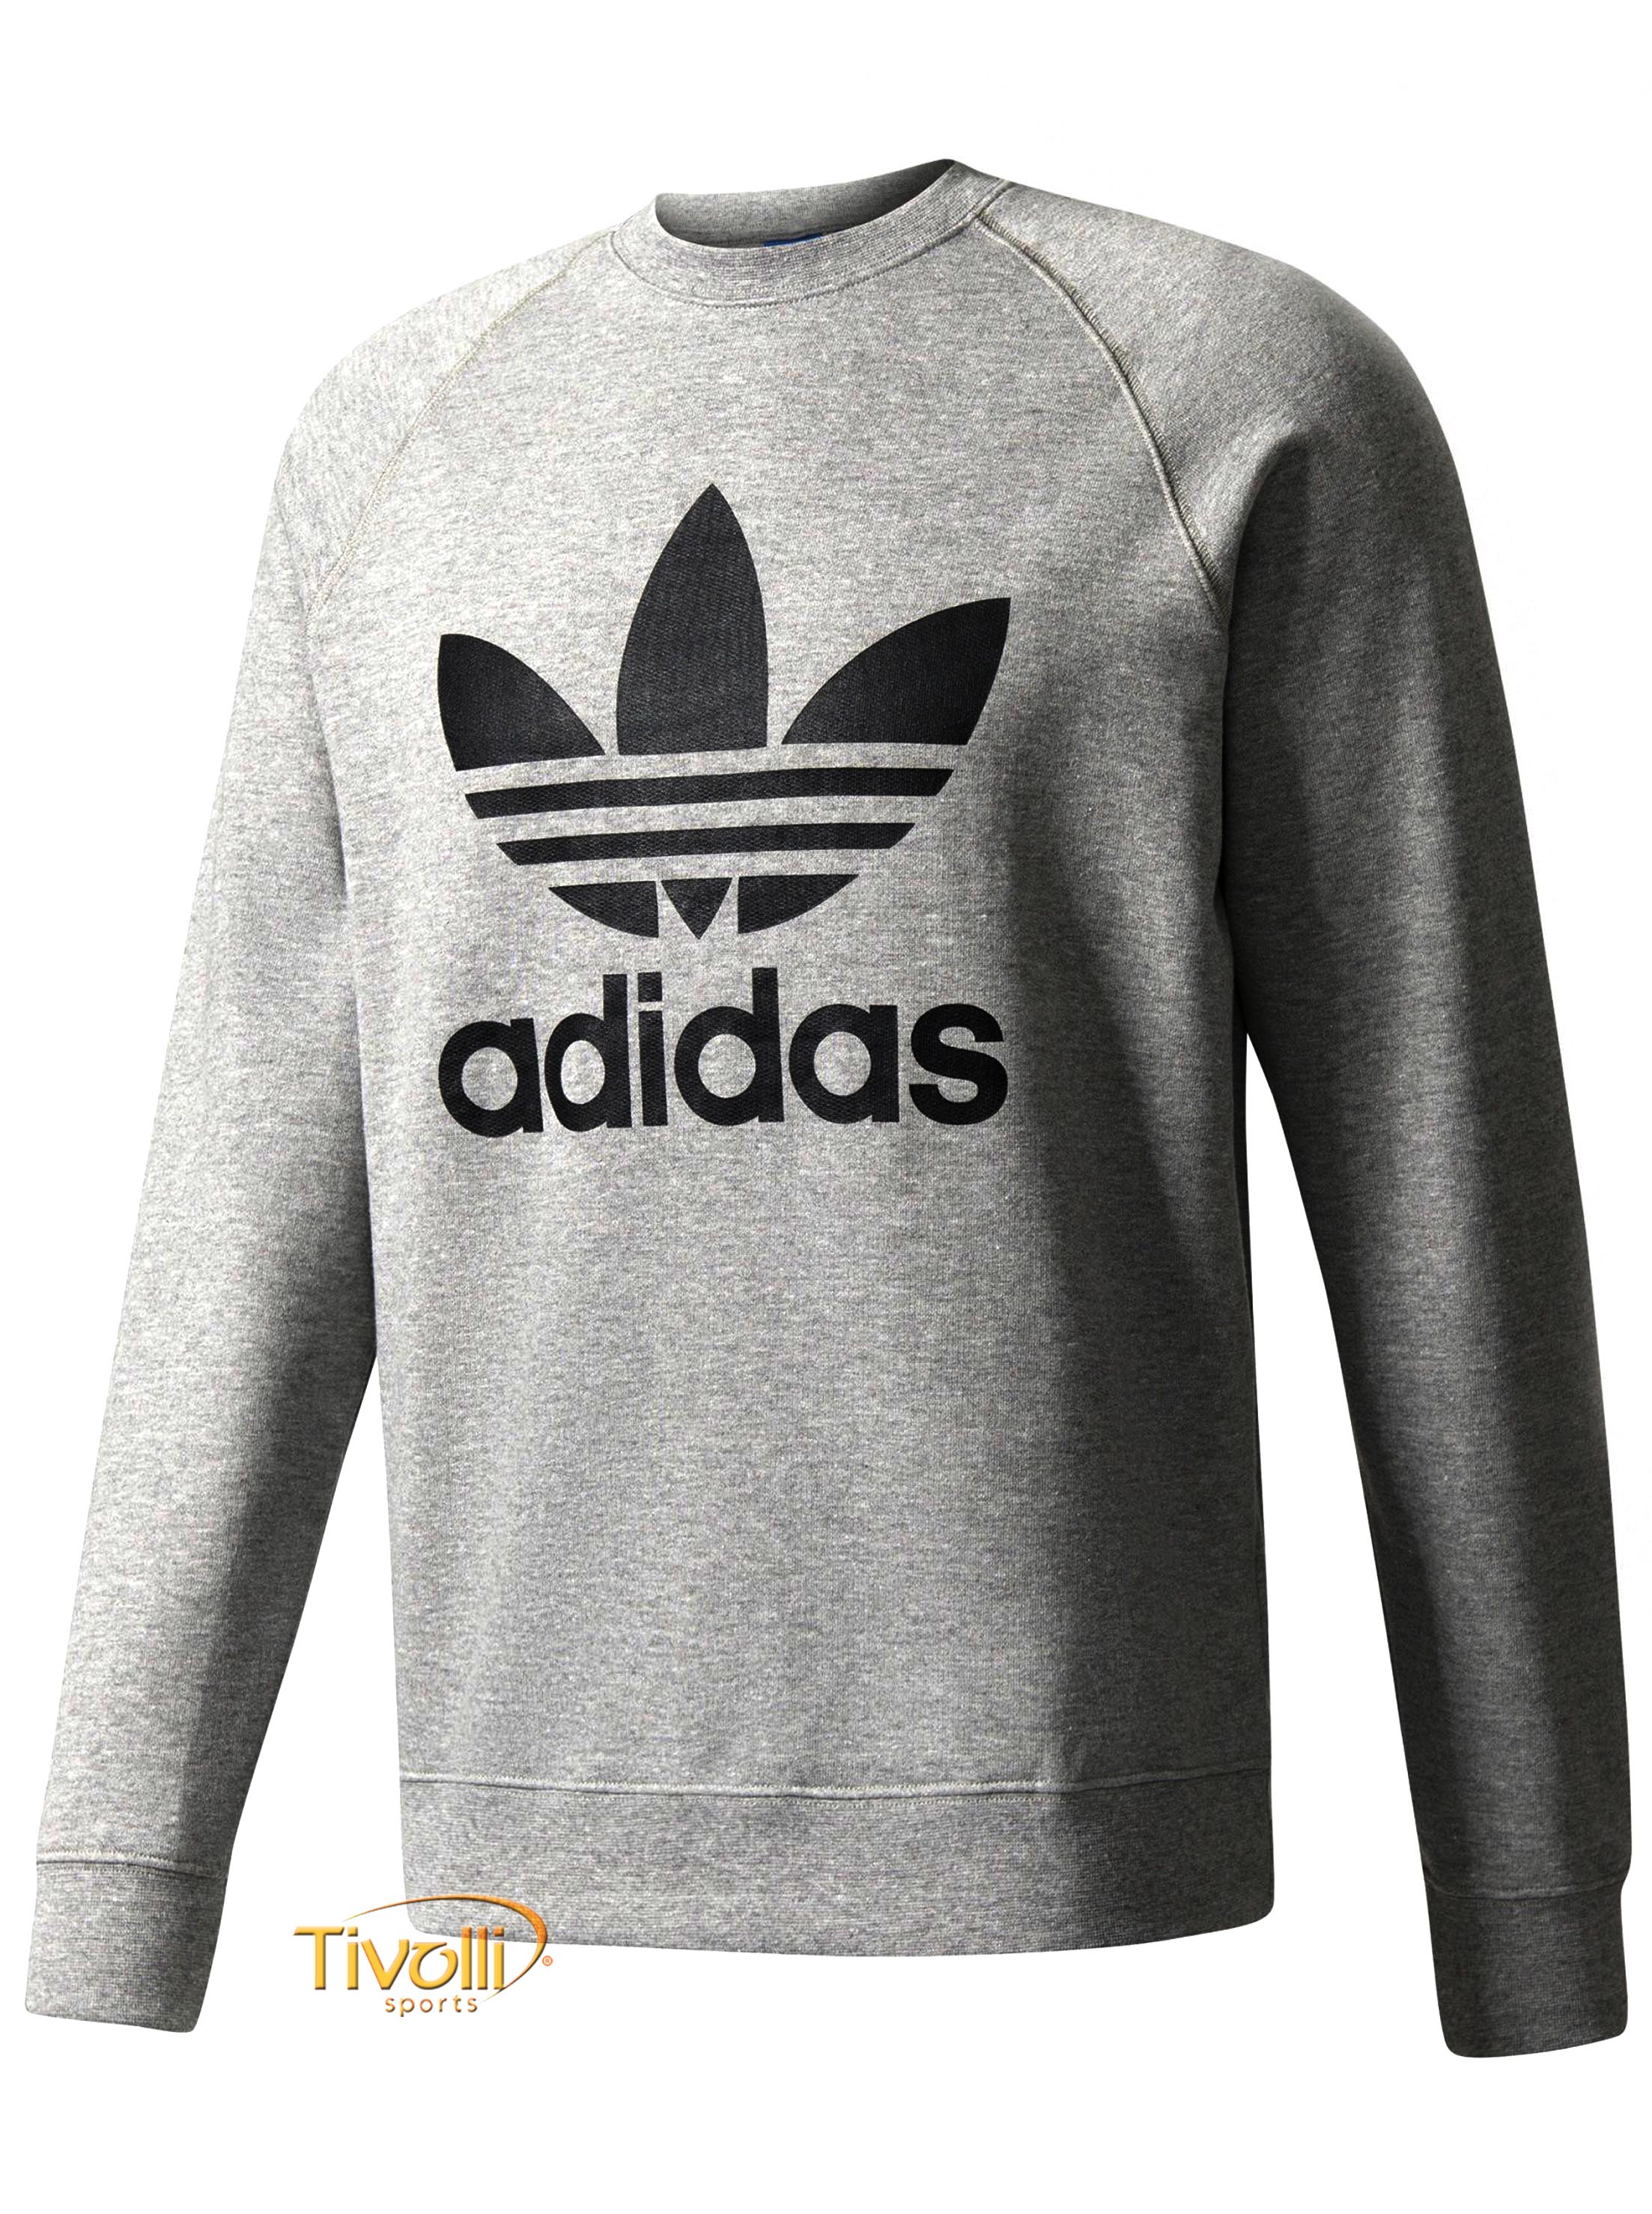 dcb81216cd7 Blusa Adidas Originals Moletom Crew Fleece Trefoil   Mescla